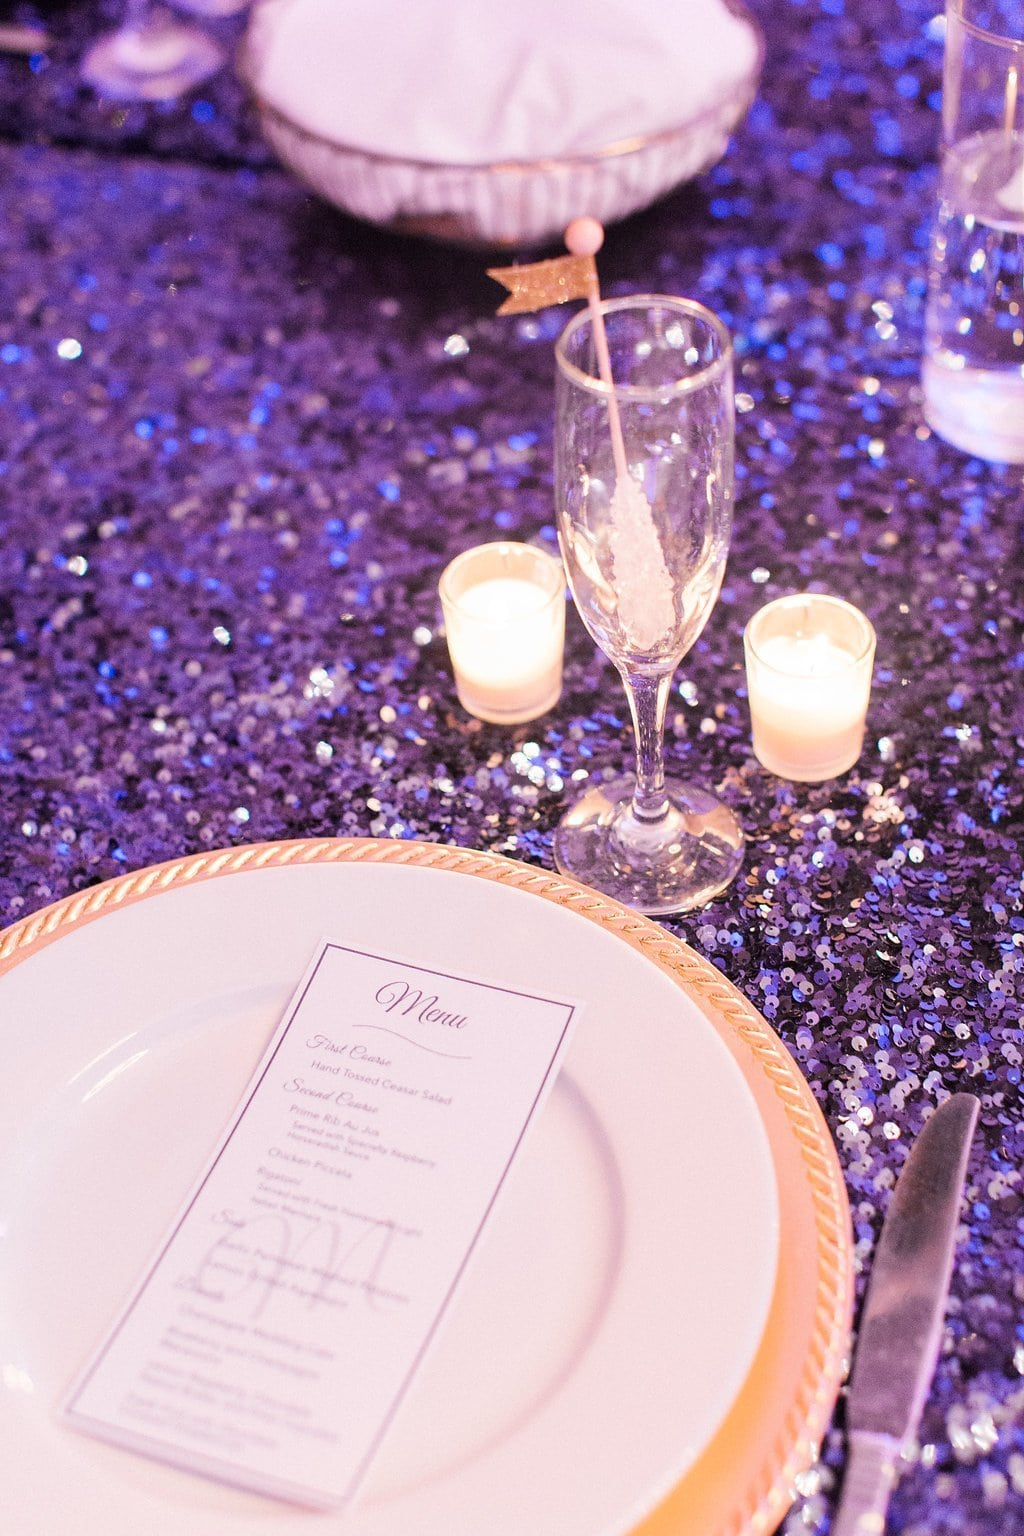 Table setting with blue sequence table cloth and gold plates